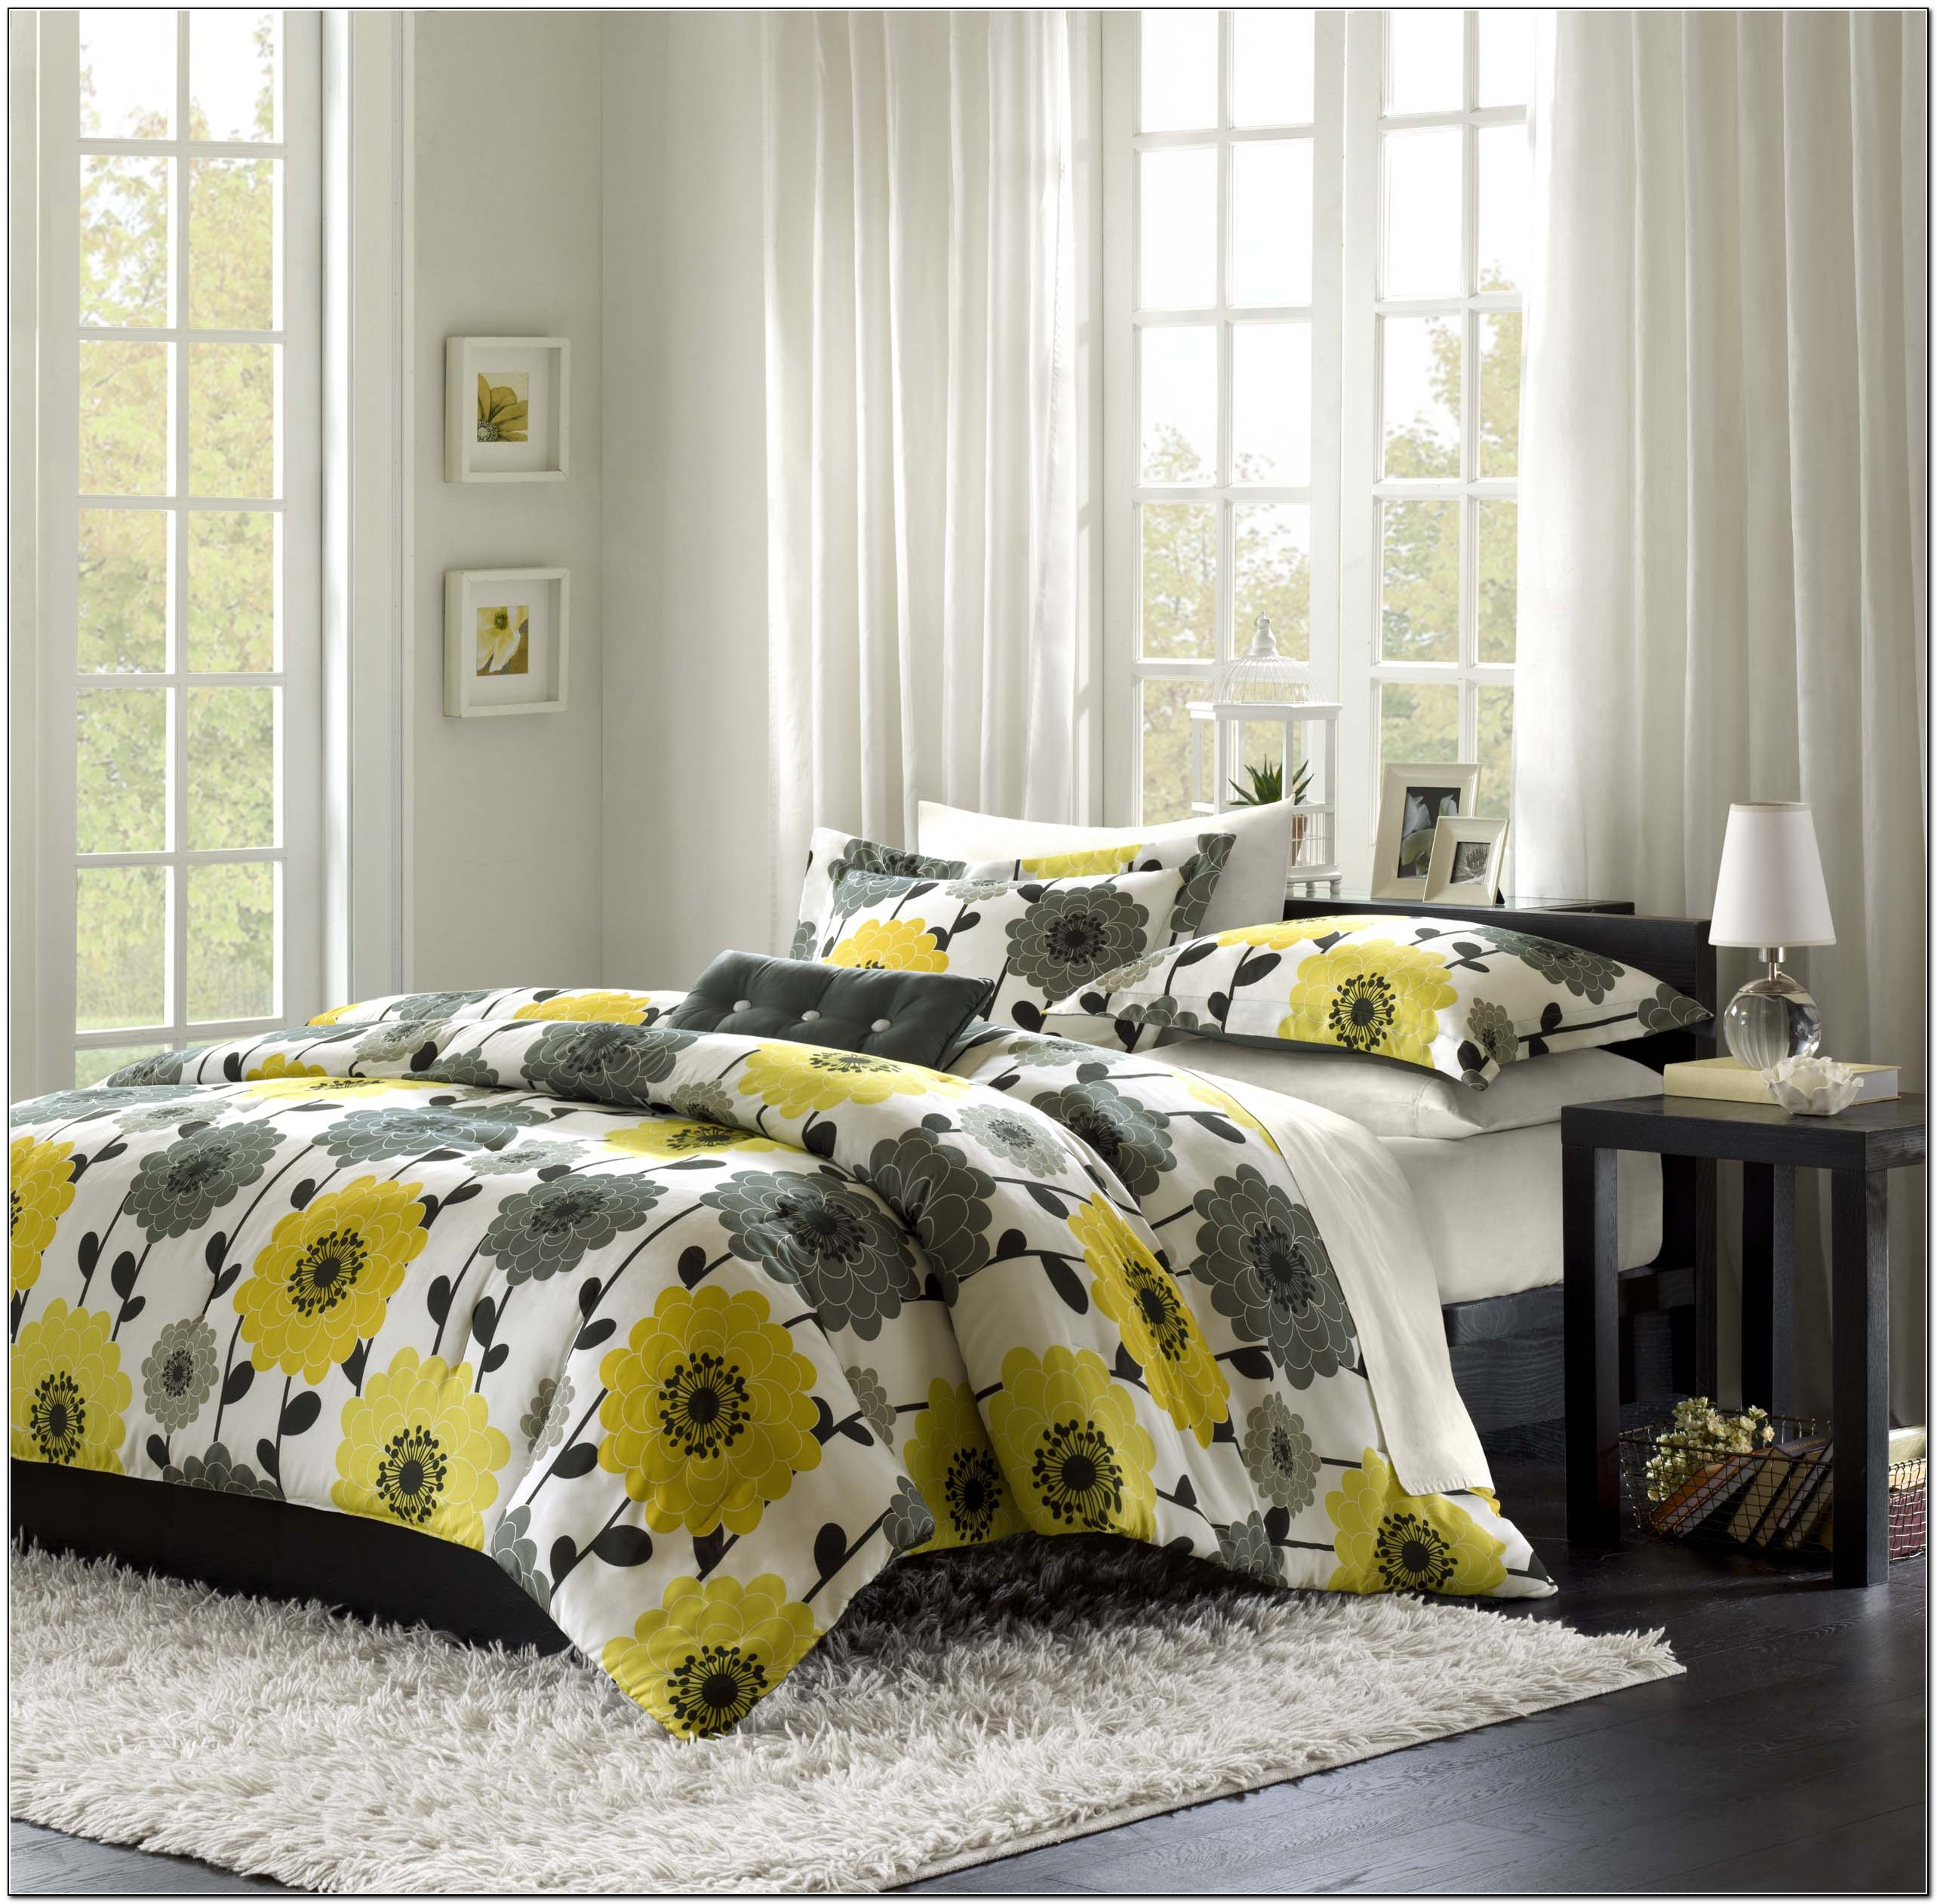 yellow and grey bedding kohl 39 s download page home design ideas galleries home design ideas. Black Bedroom Furniture Sets. Home Design Ideas